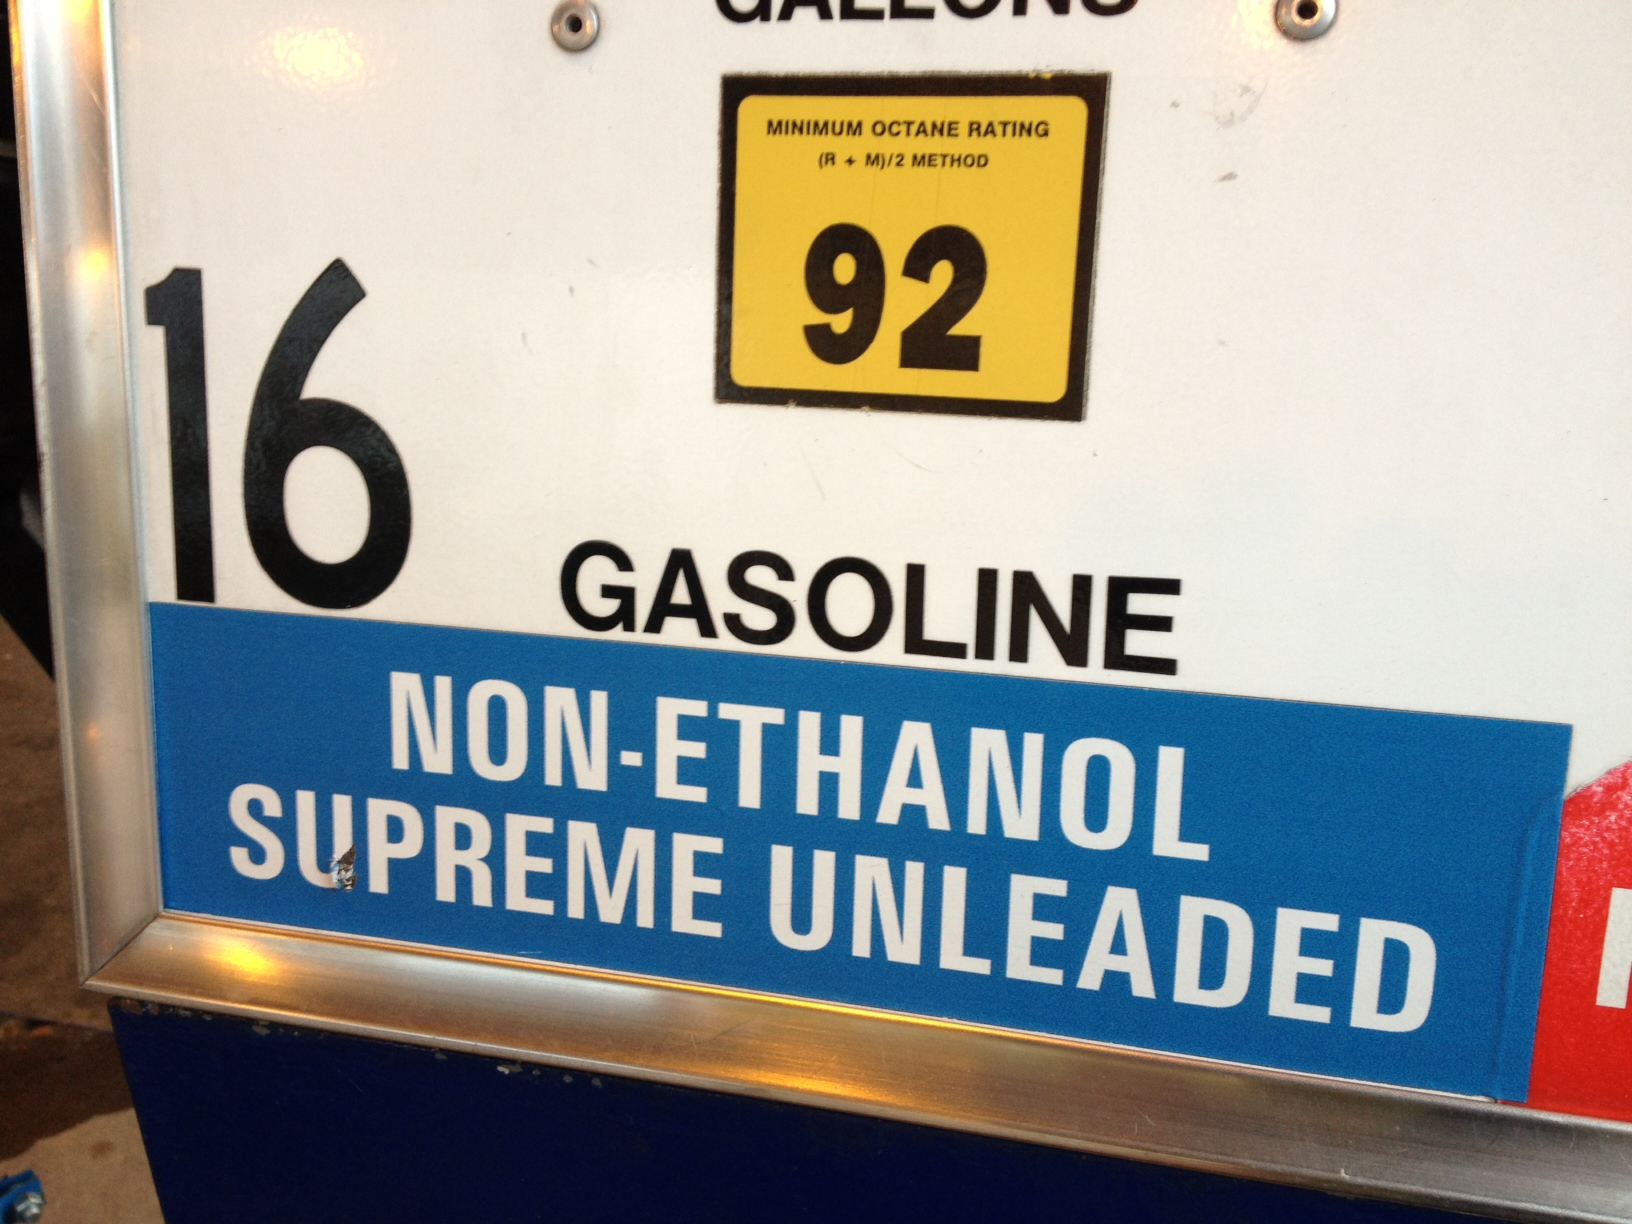 Ethanol In Marine Fuels: Why It Makes Boat Owners So Angry